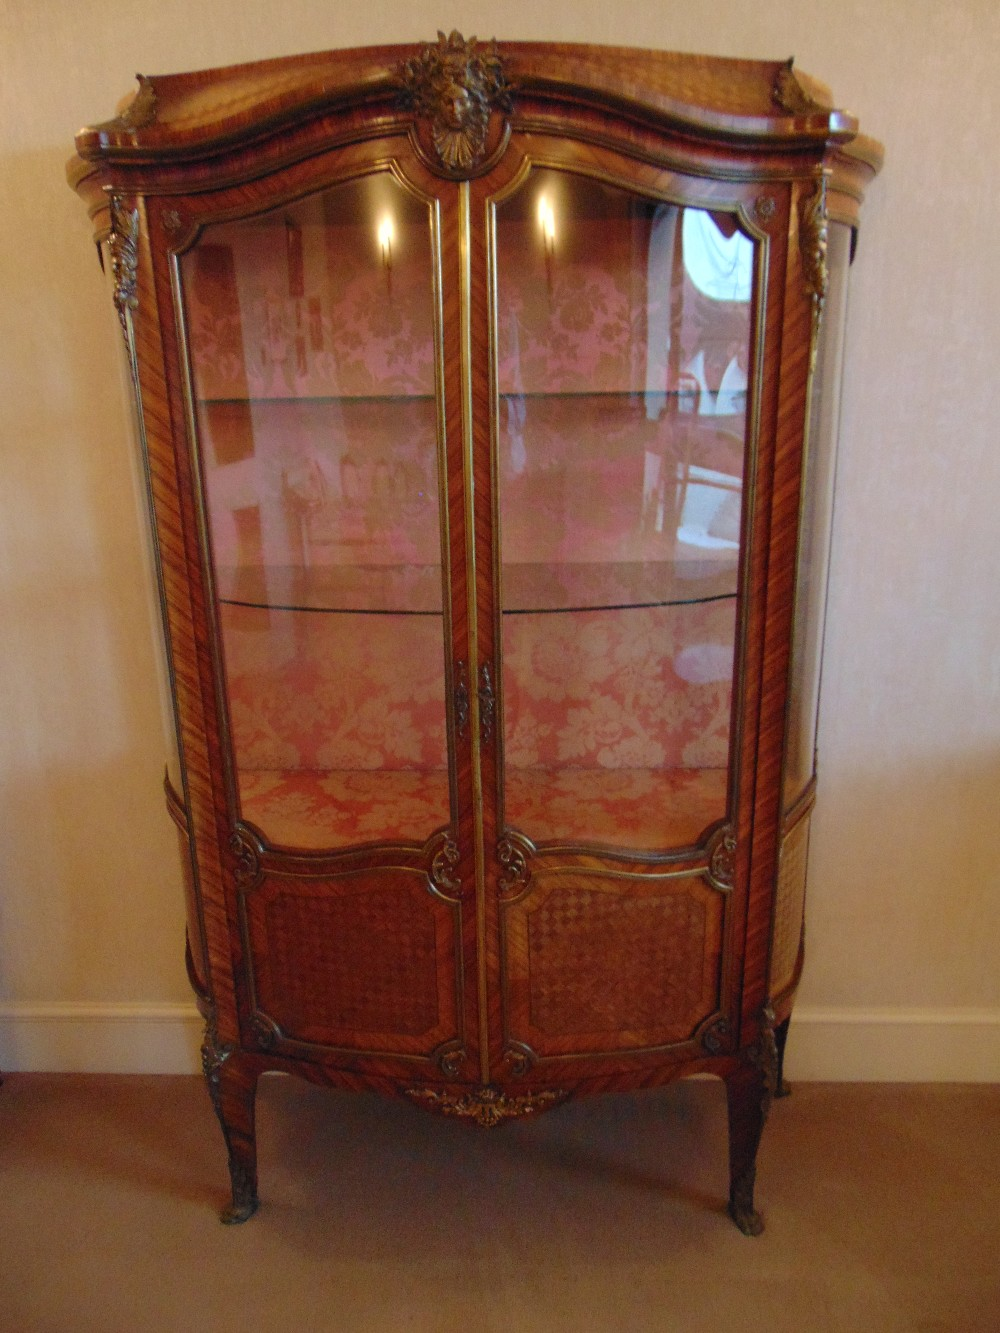 Lot 7 - A French style two door glazed Kingswood display cabinet with applied gilded metal mounts